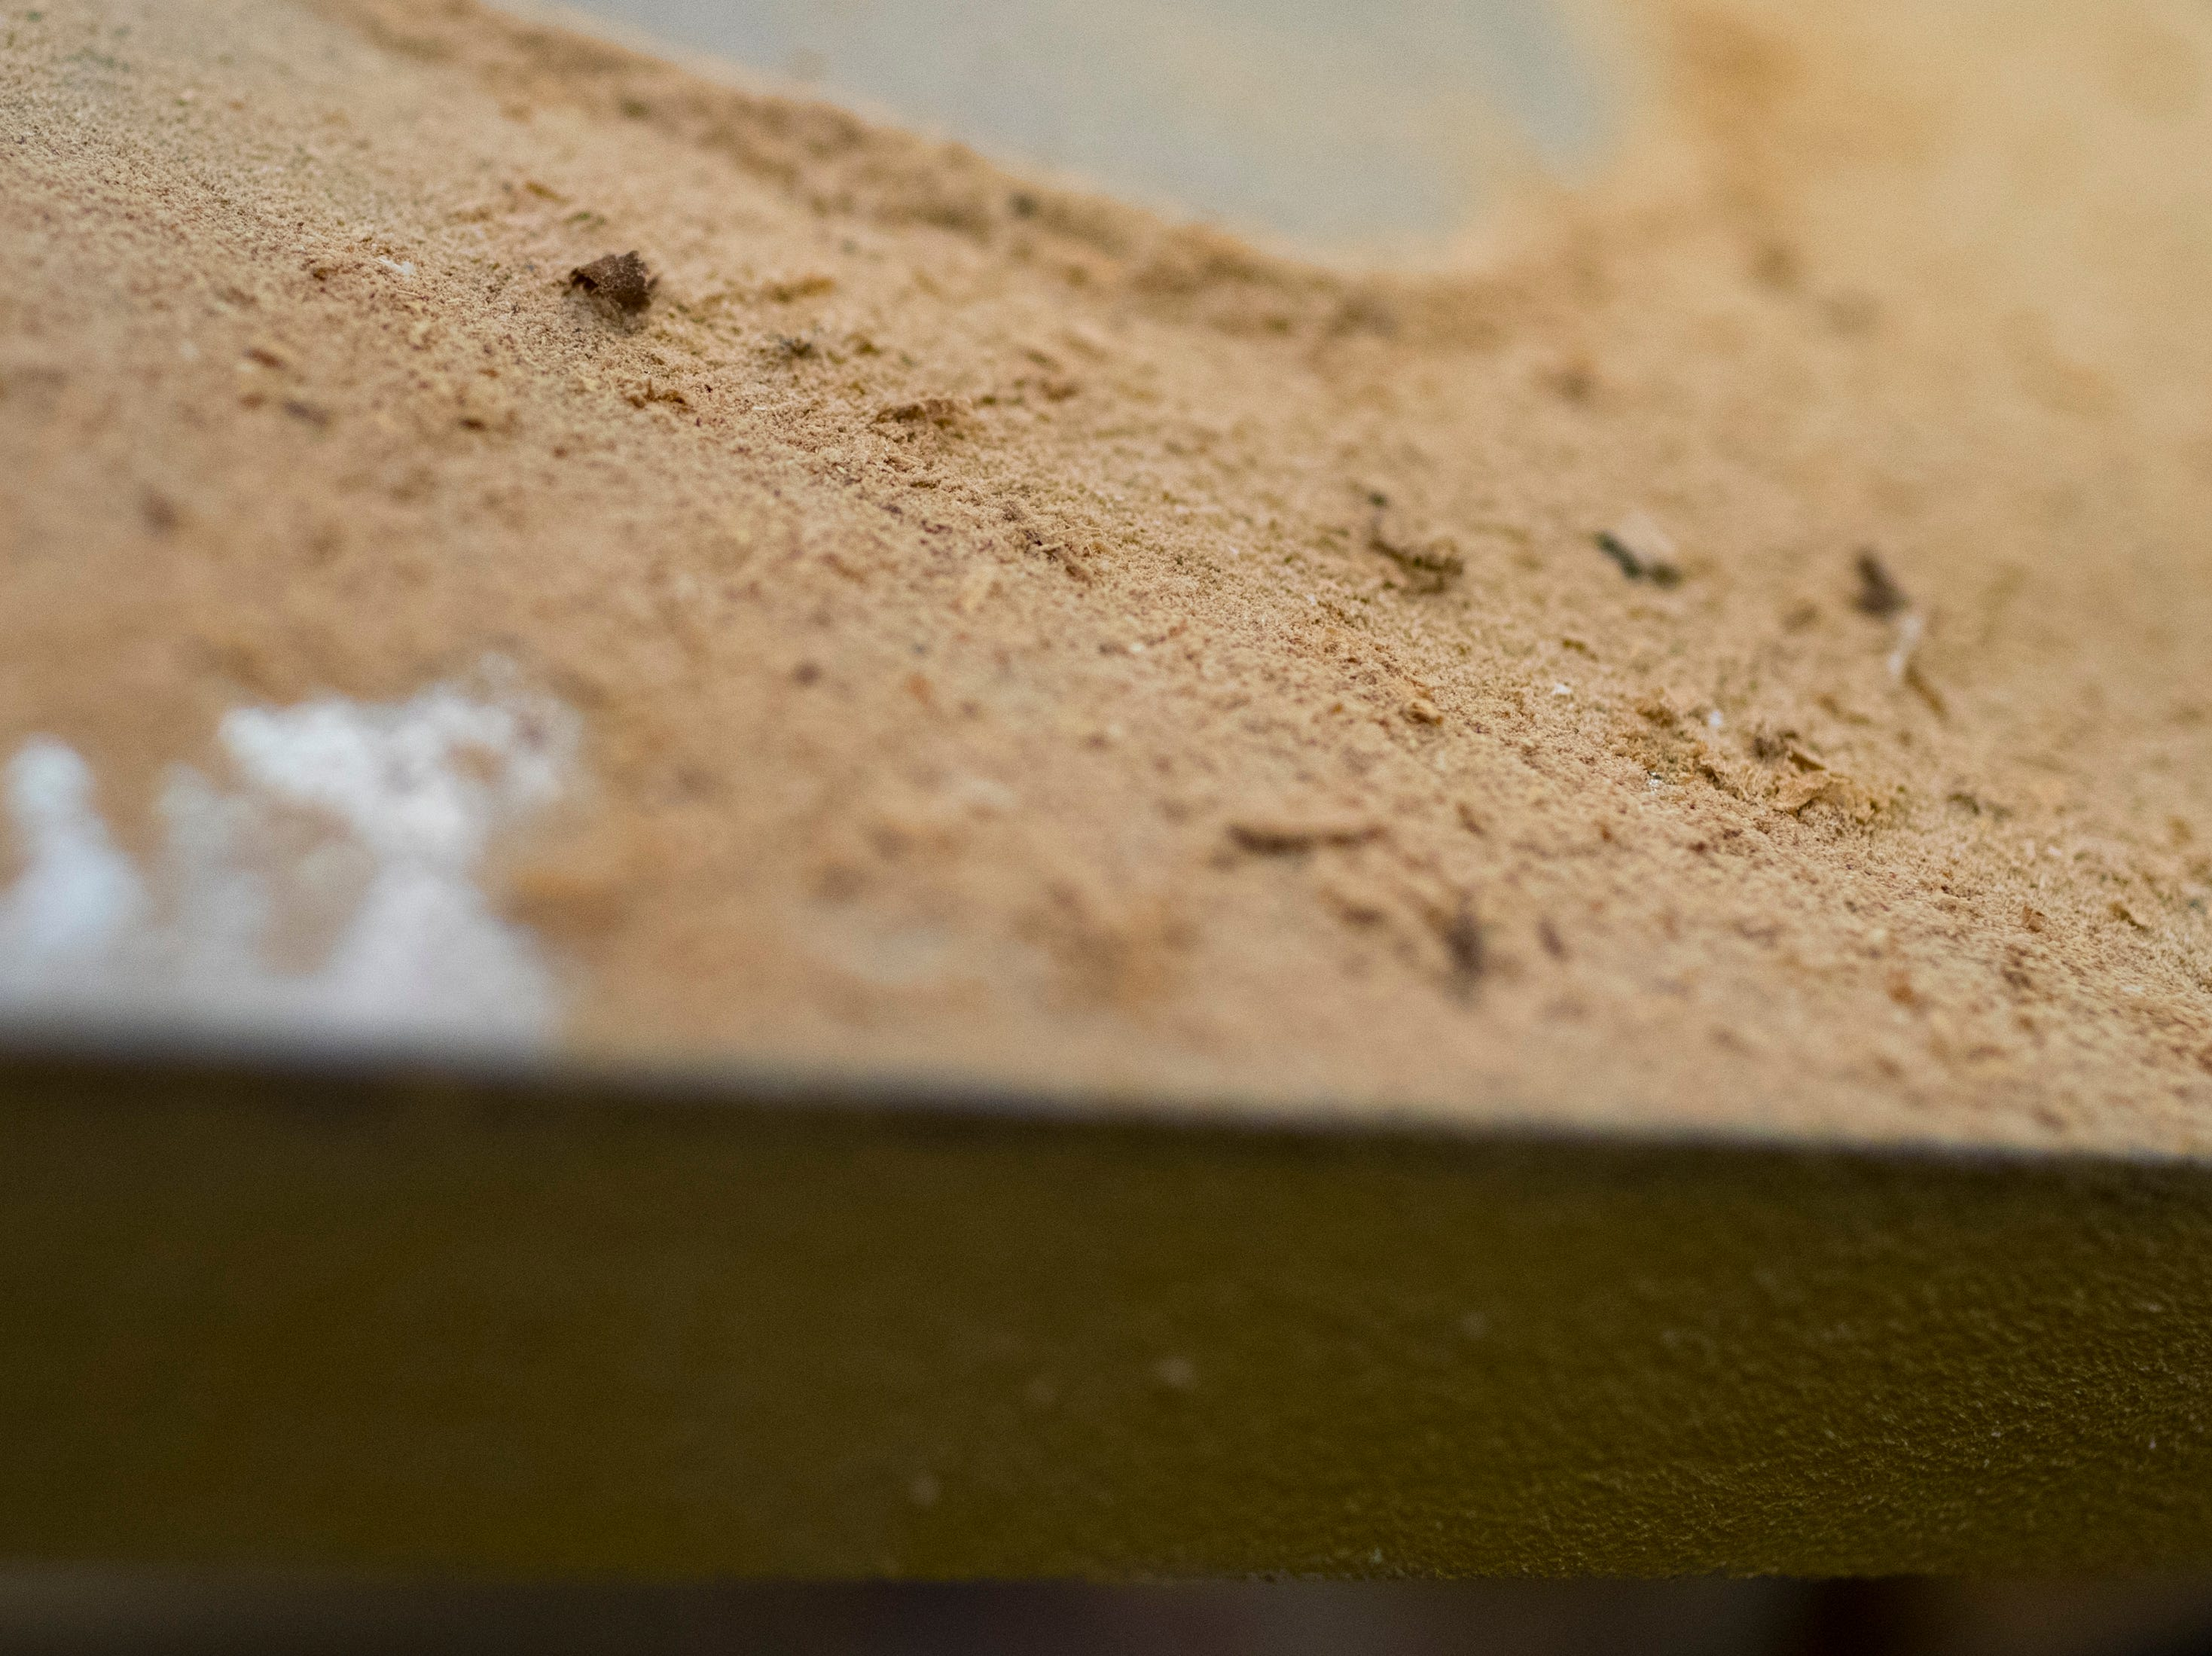 Saw dust collects on a  piece of equipment at TN Box Beam in Franklin on Friday, Nov. 9, 2018. TN Box Beam will be featured on the HGTV show Property Brothers Buying + Selling on Nov. 14.